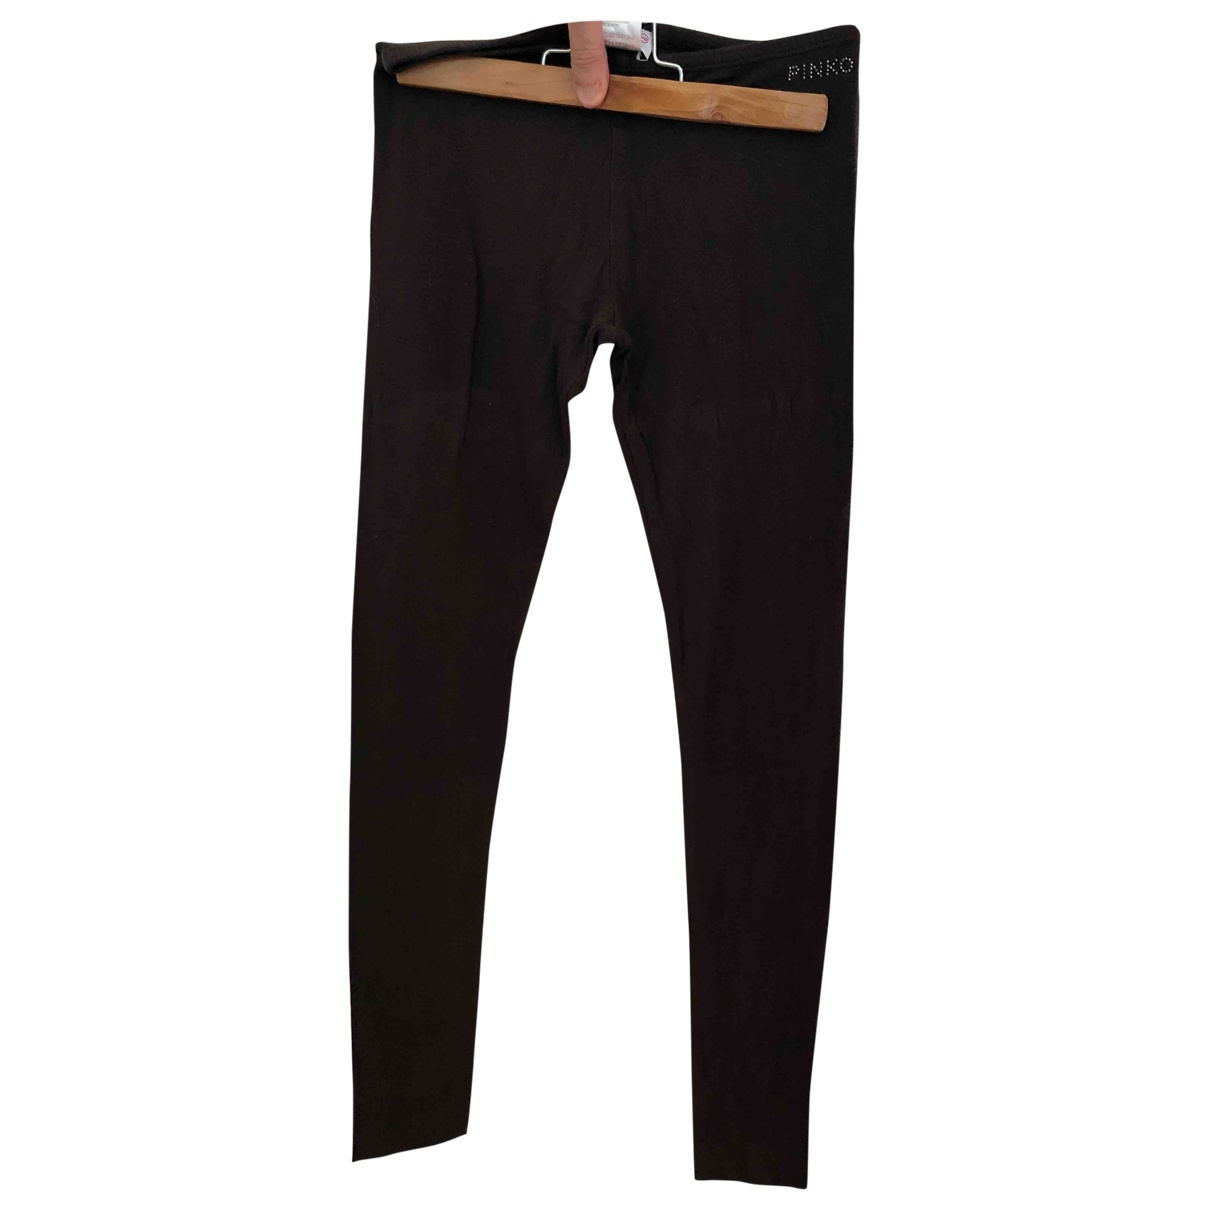 Pinko \N Brown Cotton Trousers for Kids 8 years - up to 128cm FR